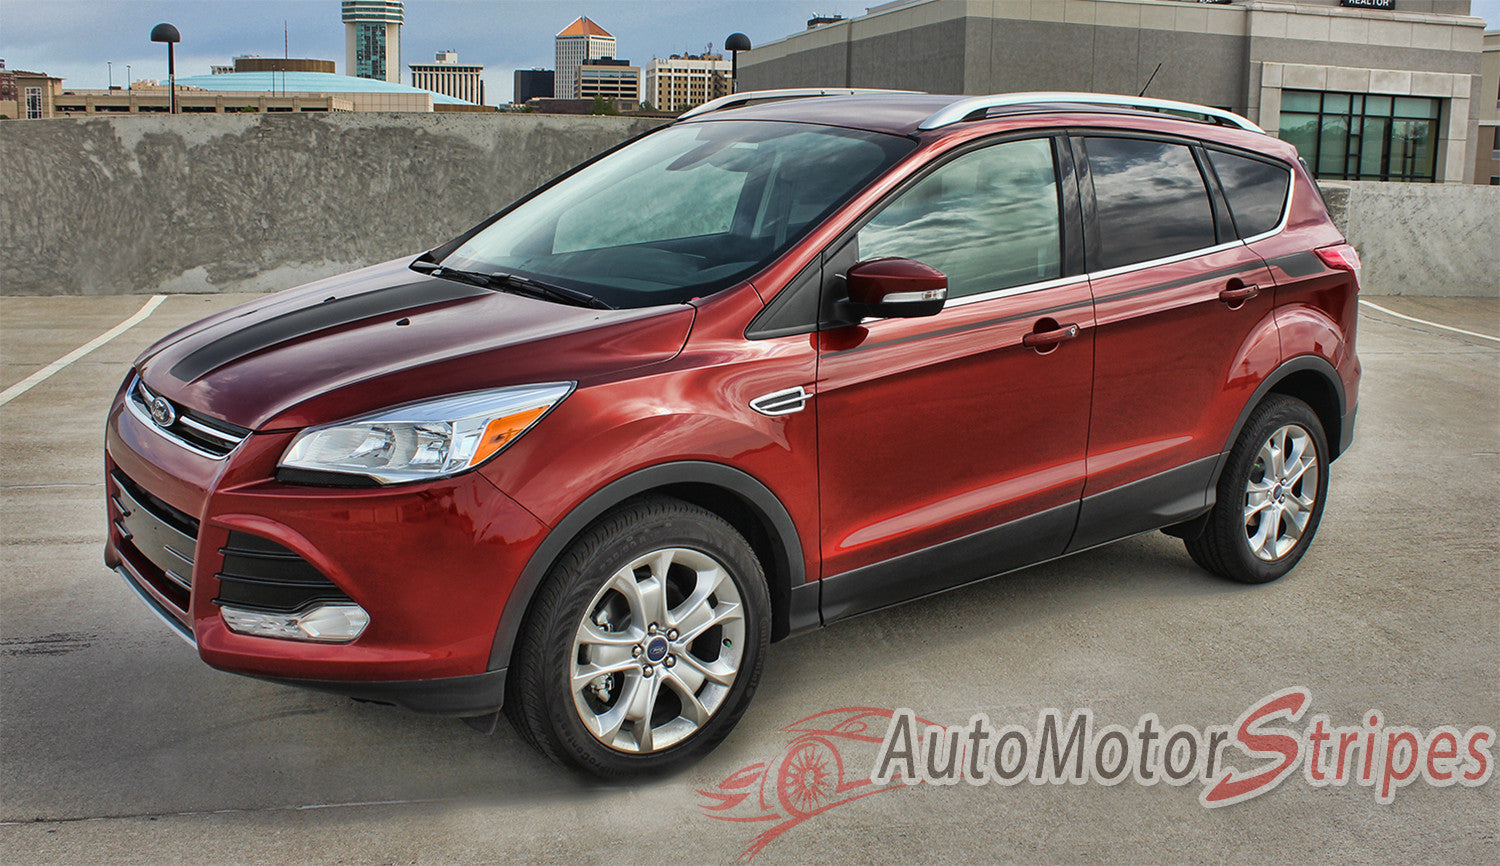 2013 2019 Ford Escape Outbreak Decals Mid Body Line Door Vinyl Graphic Stripes Kit